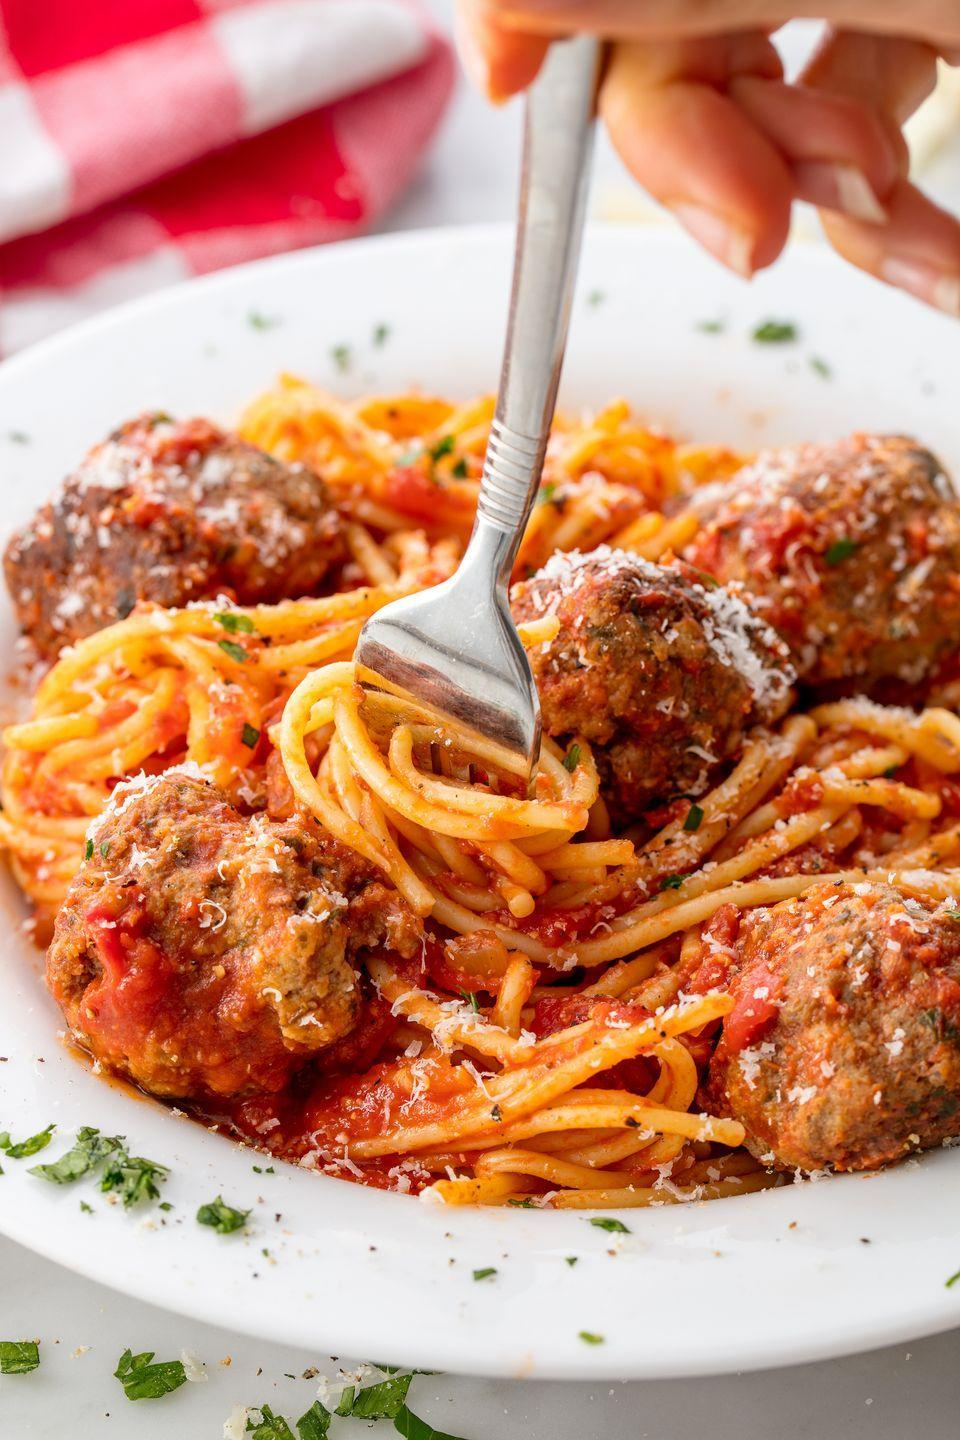 """<p>Making your own meatballs and sauce makes it even better.</p><p>Get the recipe from <a href=""""https://www.delish.com/cooking/recipe-ideas/recipes/a55764/best-spaghetti-and-meatballs-recipe/"""" rel=""""nofollow noopener"""" target=""""_blank"""" data-ylk=""""slk:Delish"""" class=""""link rapid-noclick-resp"""">Delish</a>.</p>"""